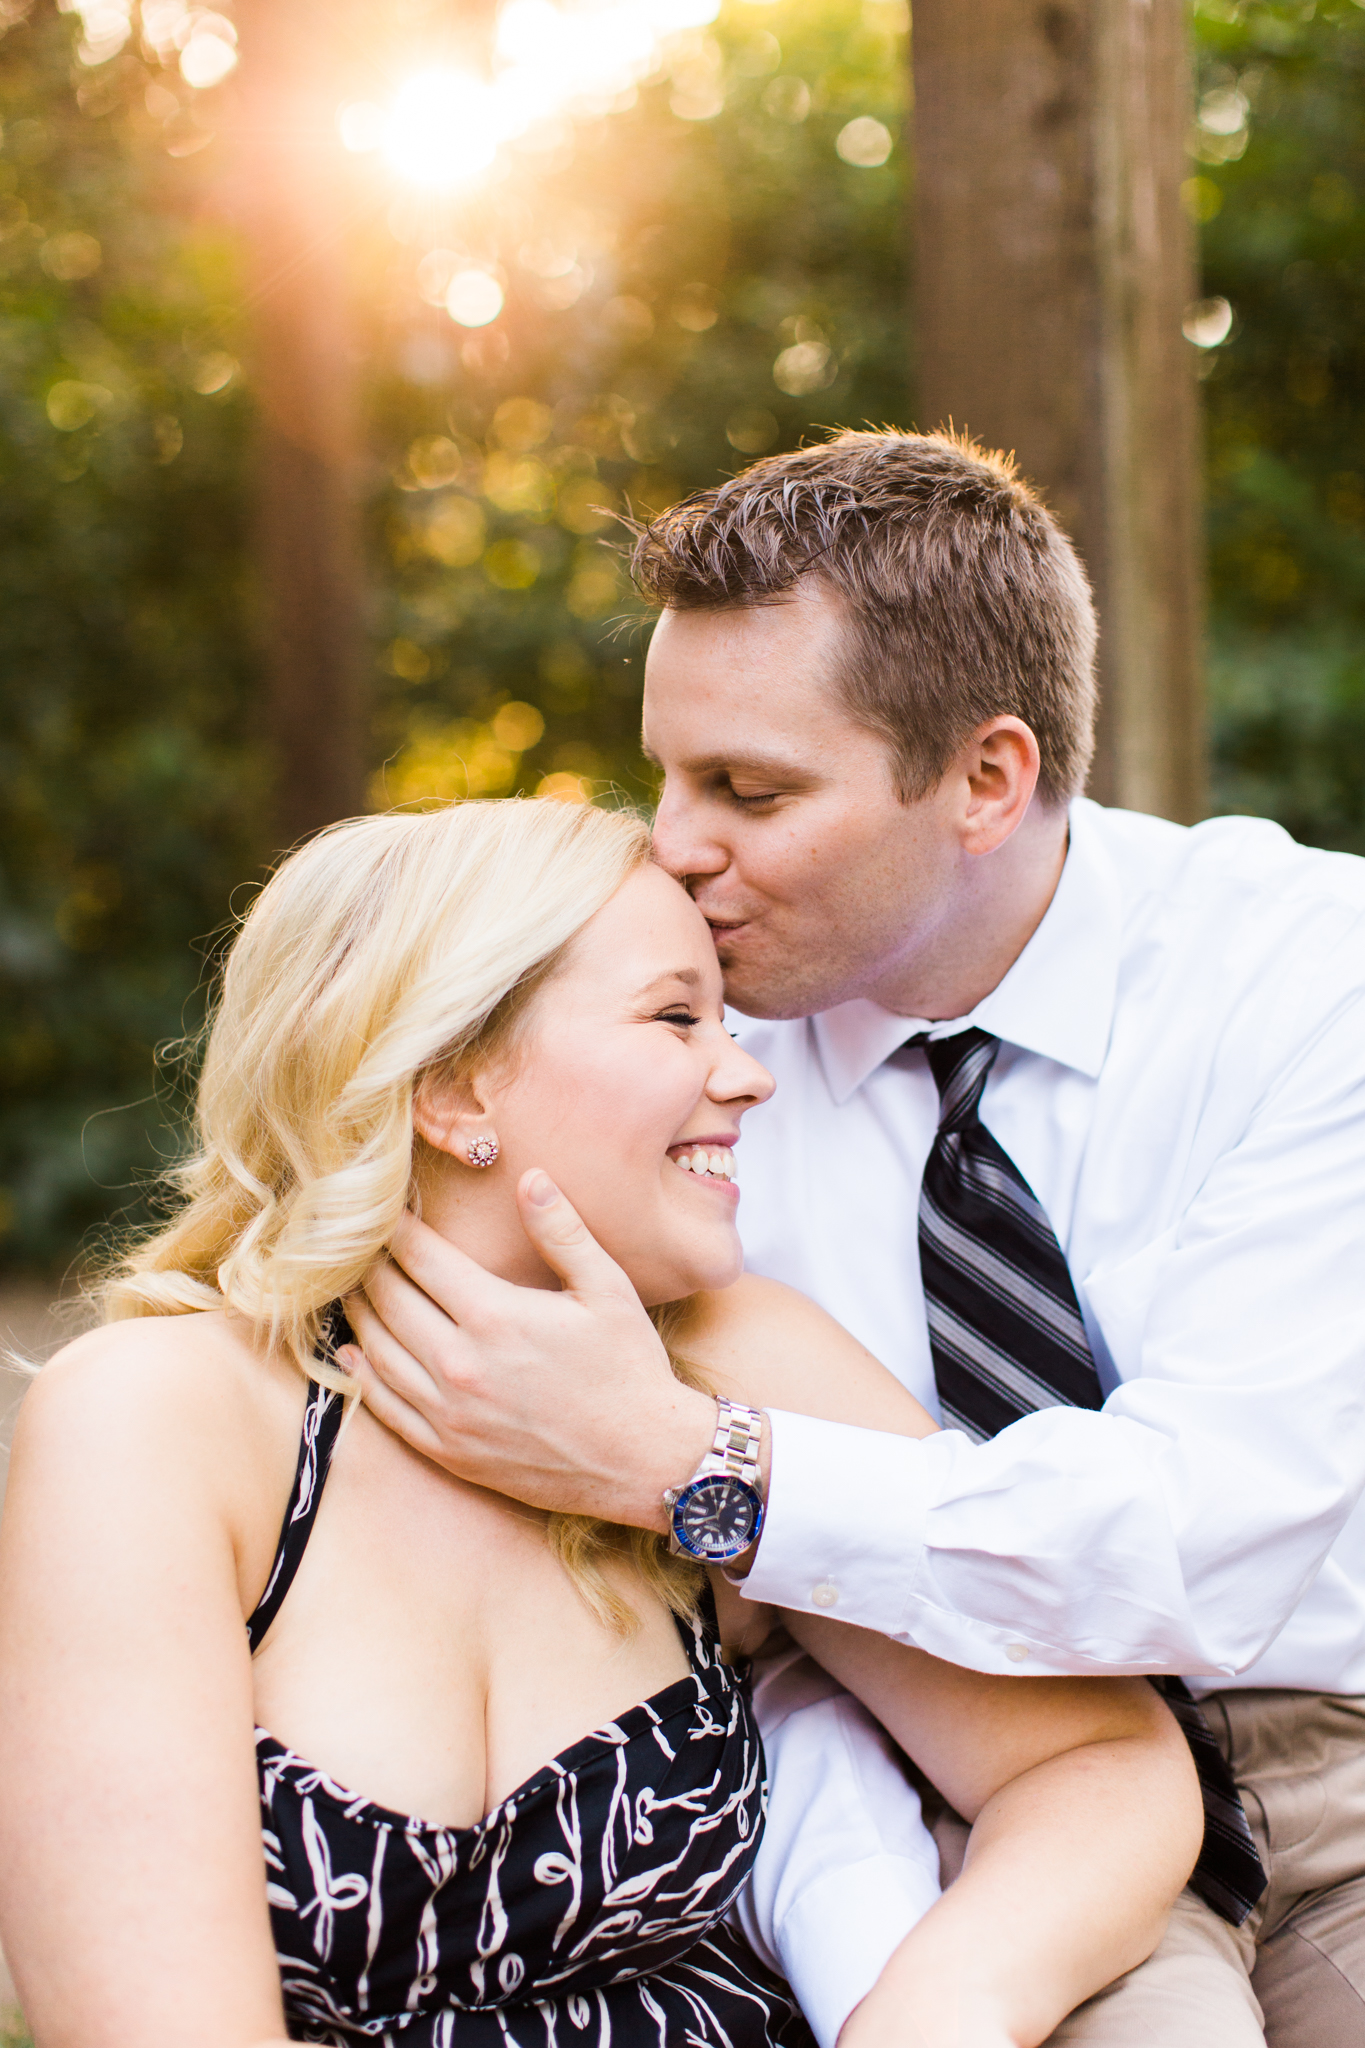 Engagement Photography Session Tips